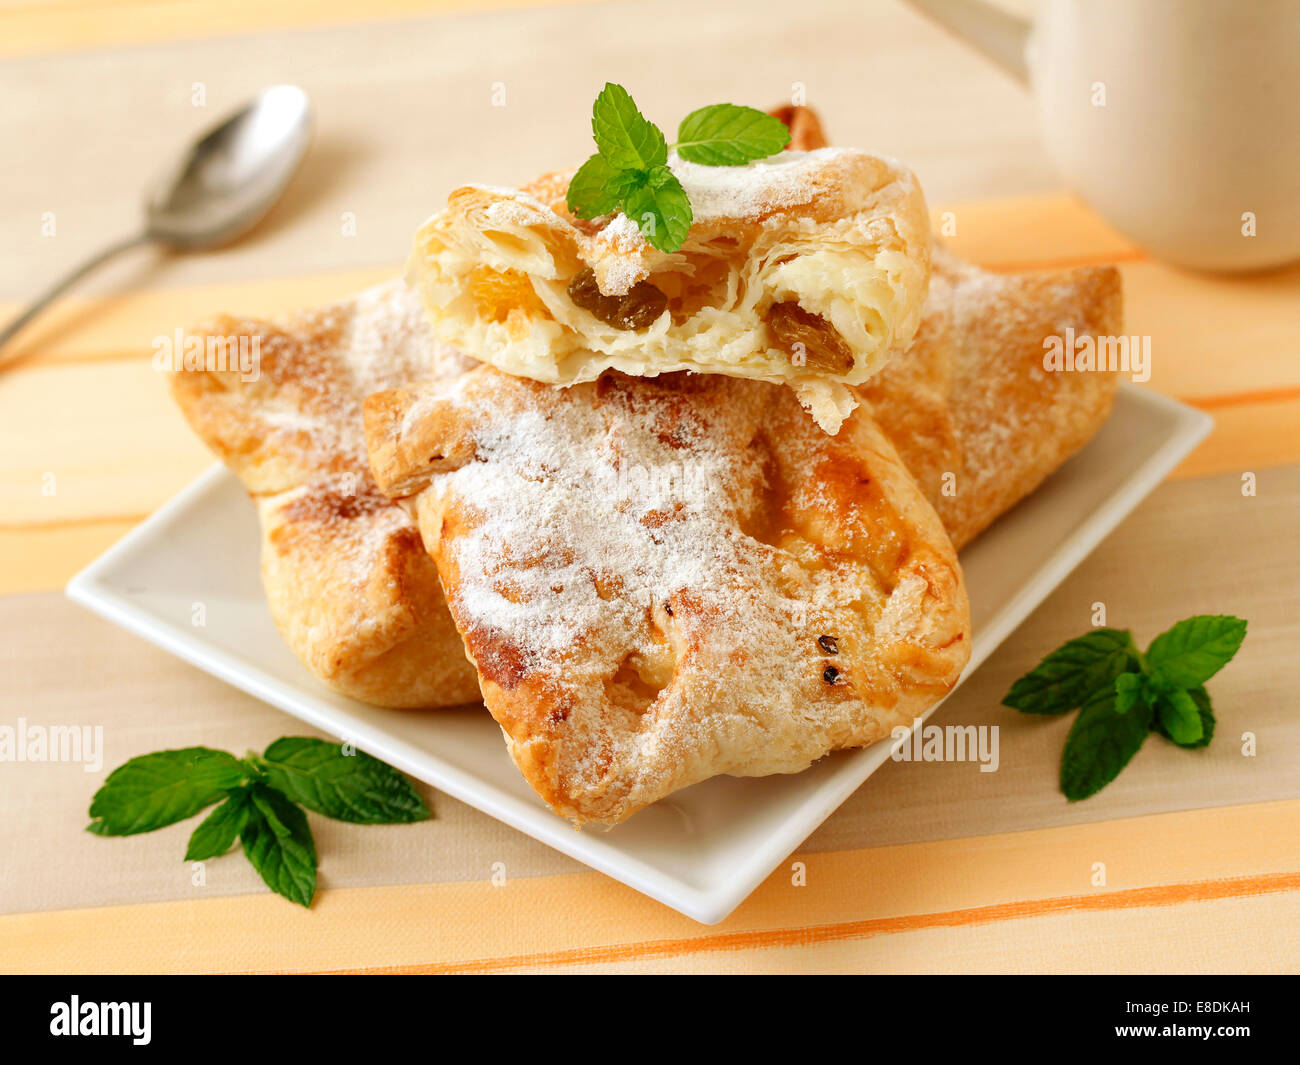 Wrapped cheese and raisins. Recipe available.. - Stock Image